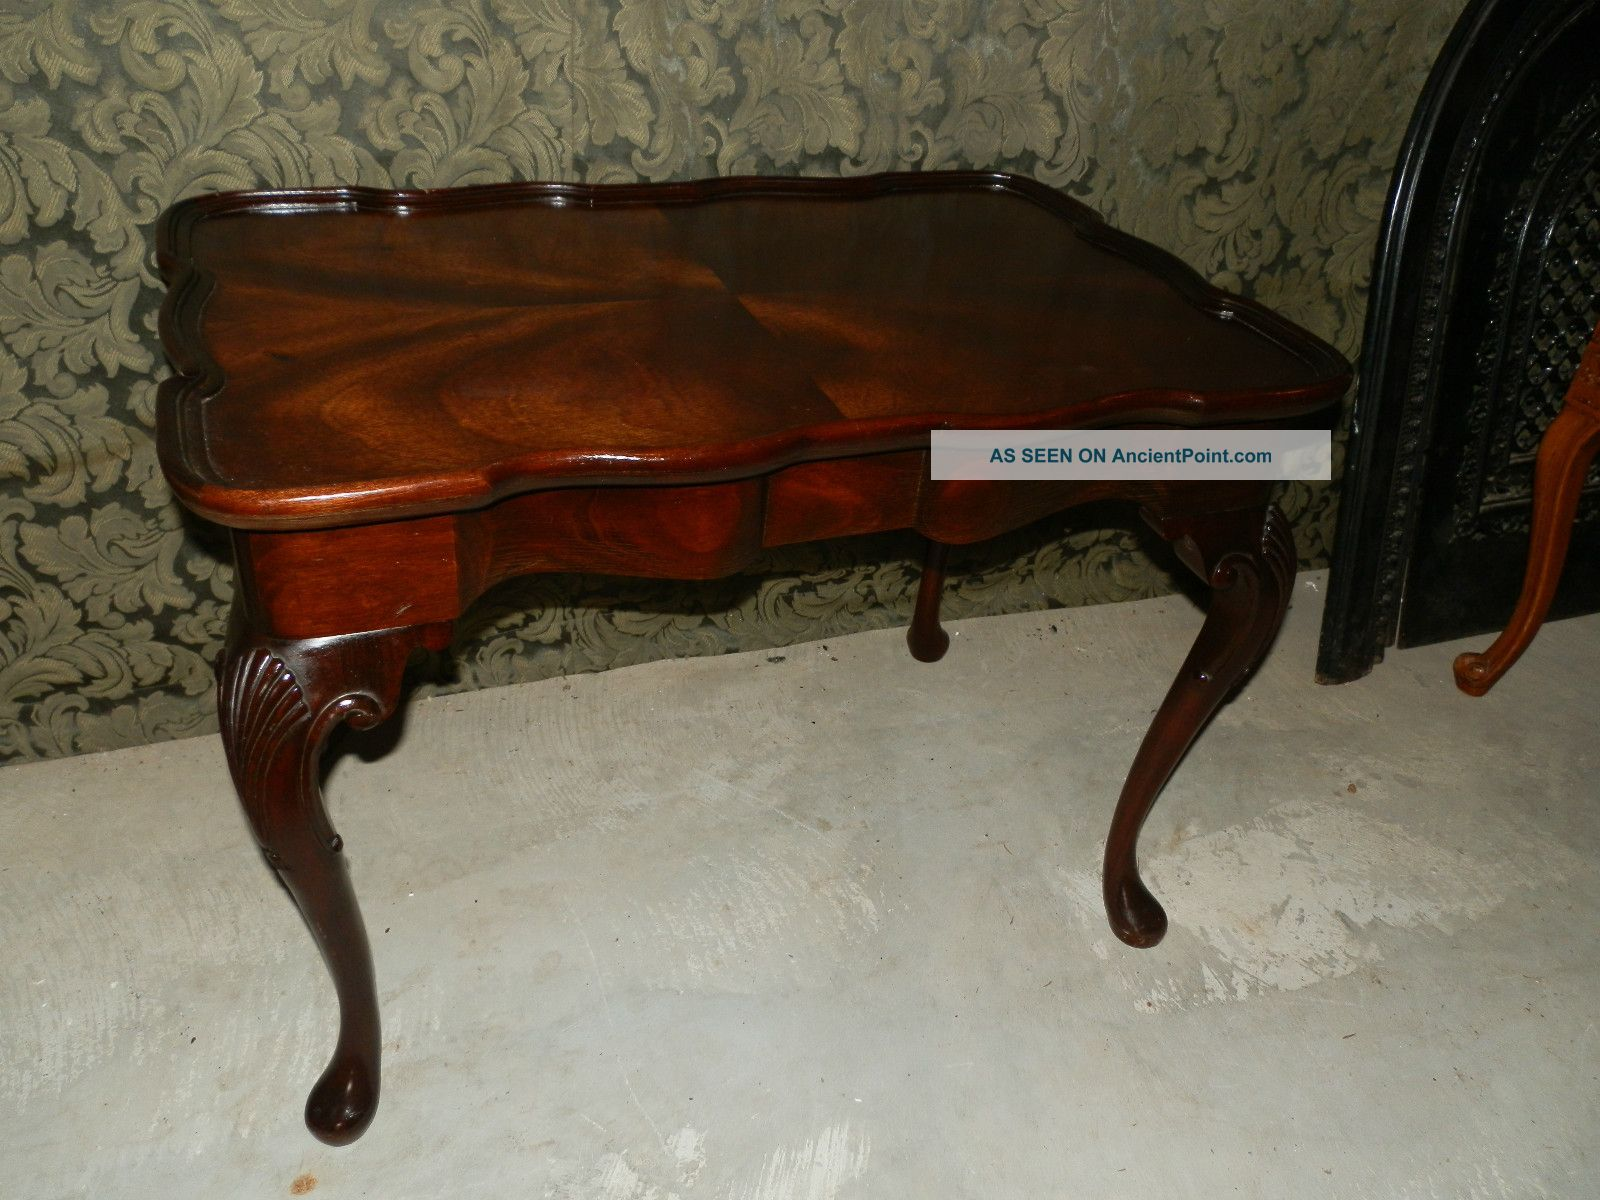 Wonderful Antique Coffee Table Carved Legs And Raised Apron 1900-1950 photo